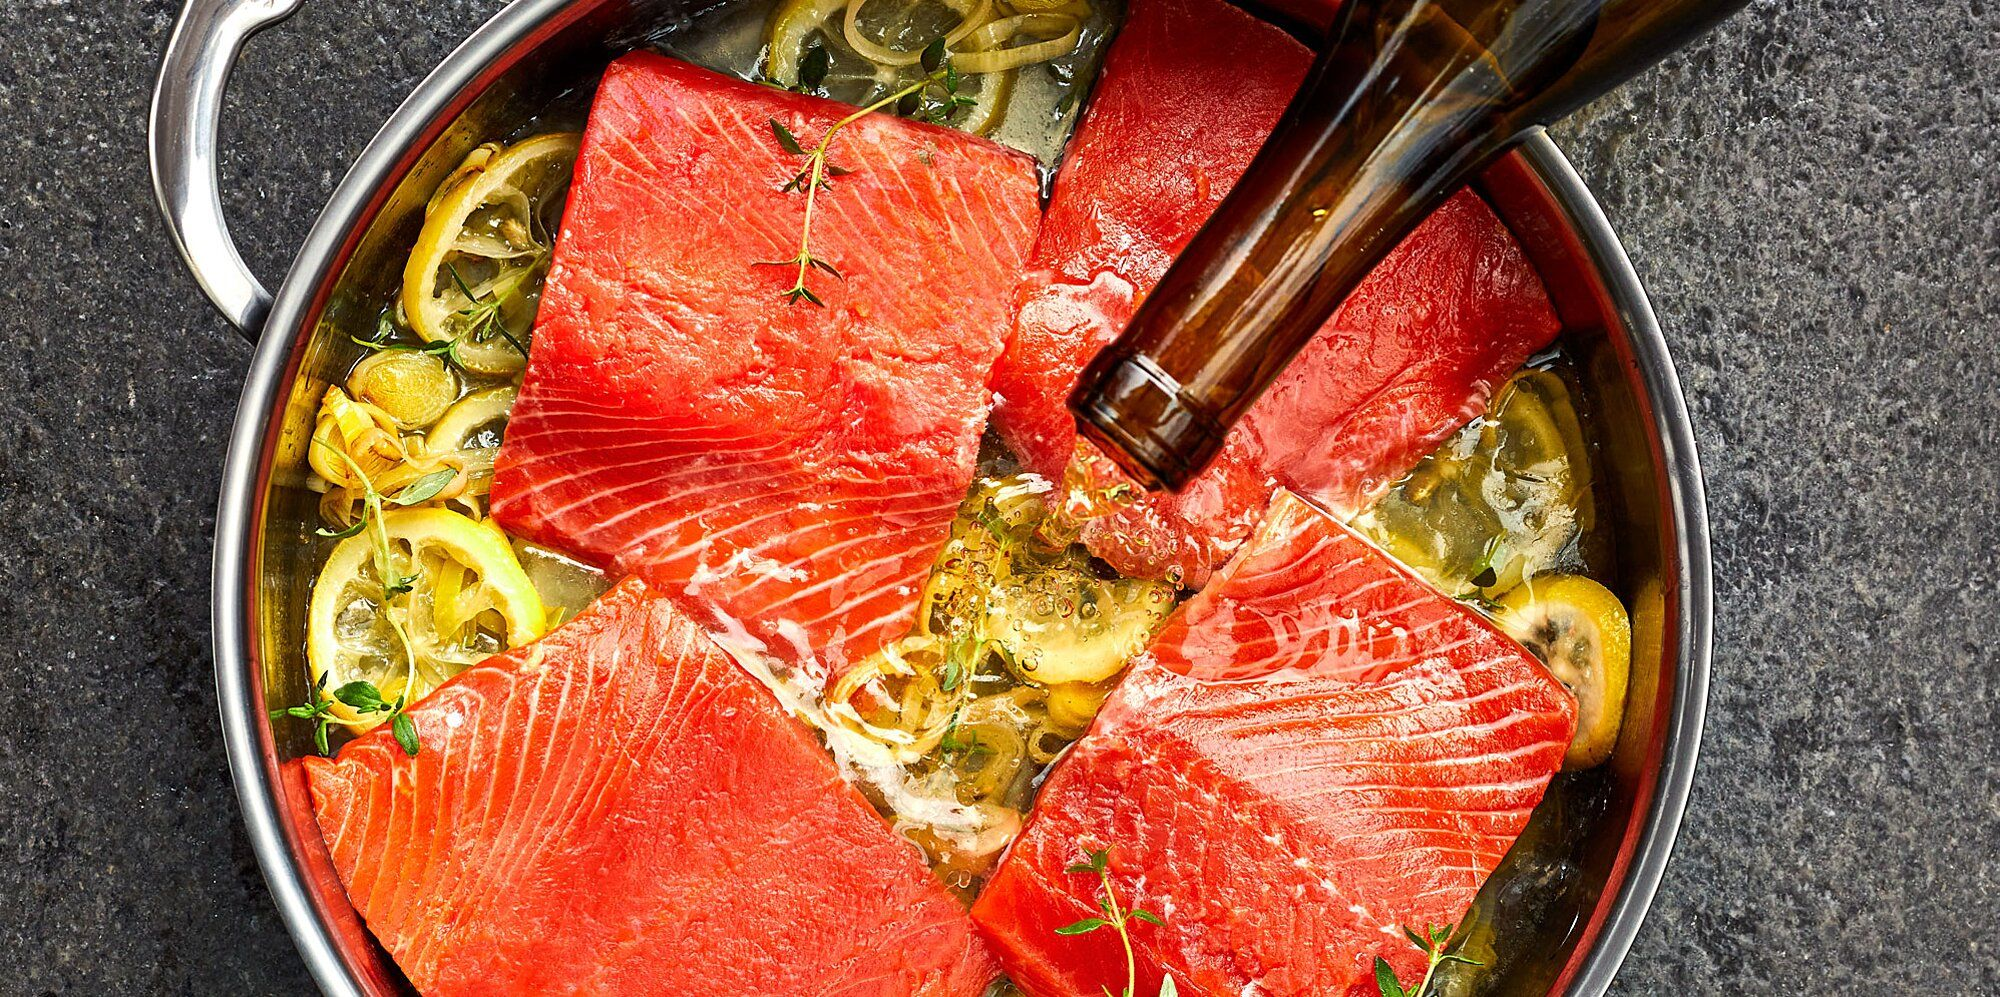 The Easiest Way To Cook Salmon Pour A Glass Of Wine In 2021 Cooking Salmon Cooking Salmon Fillet Wine Recipes